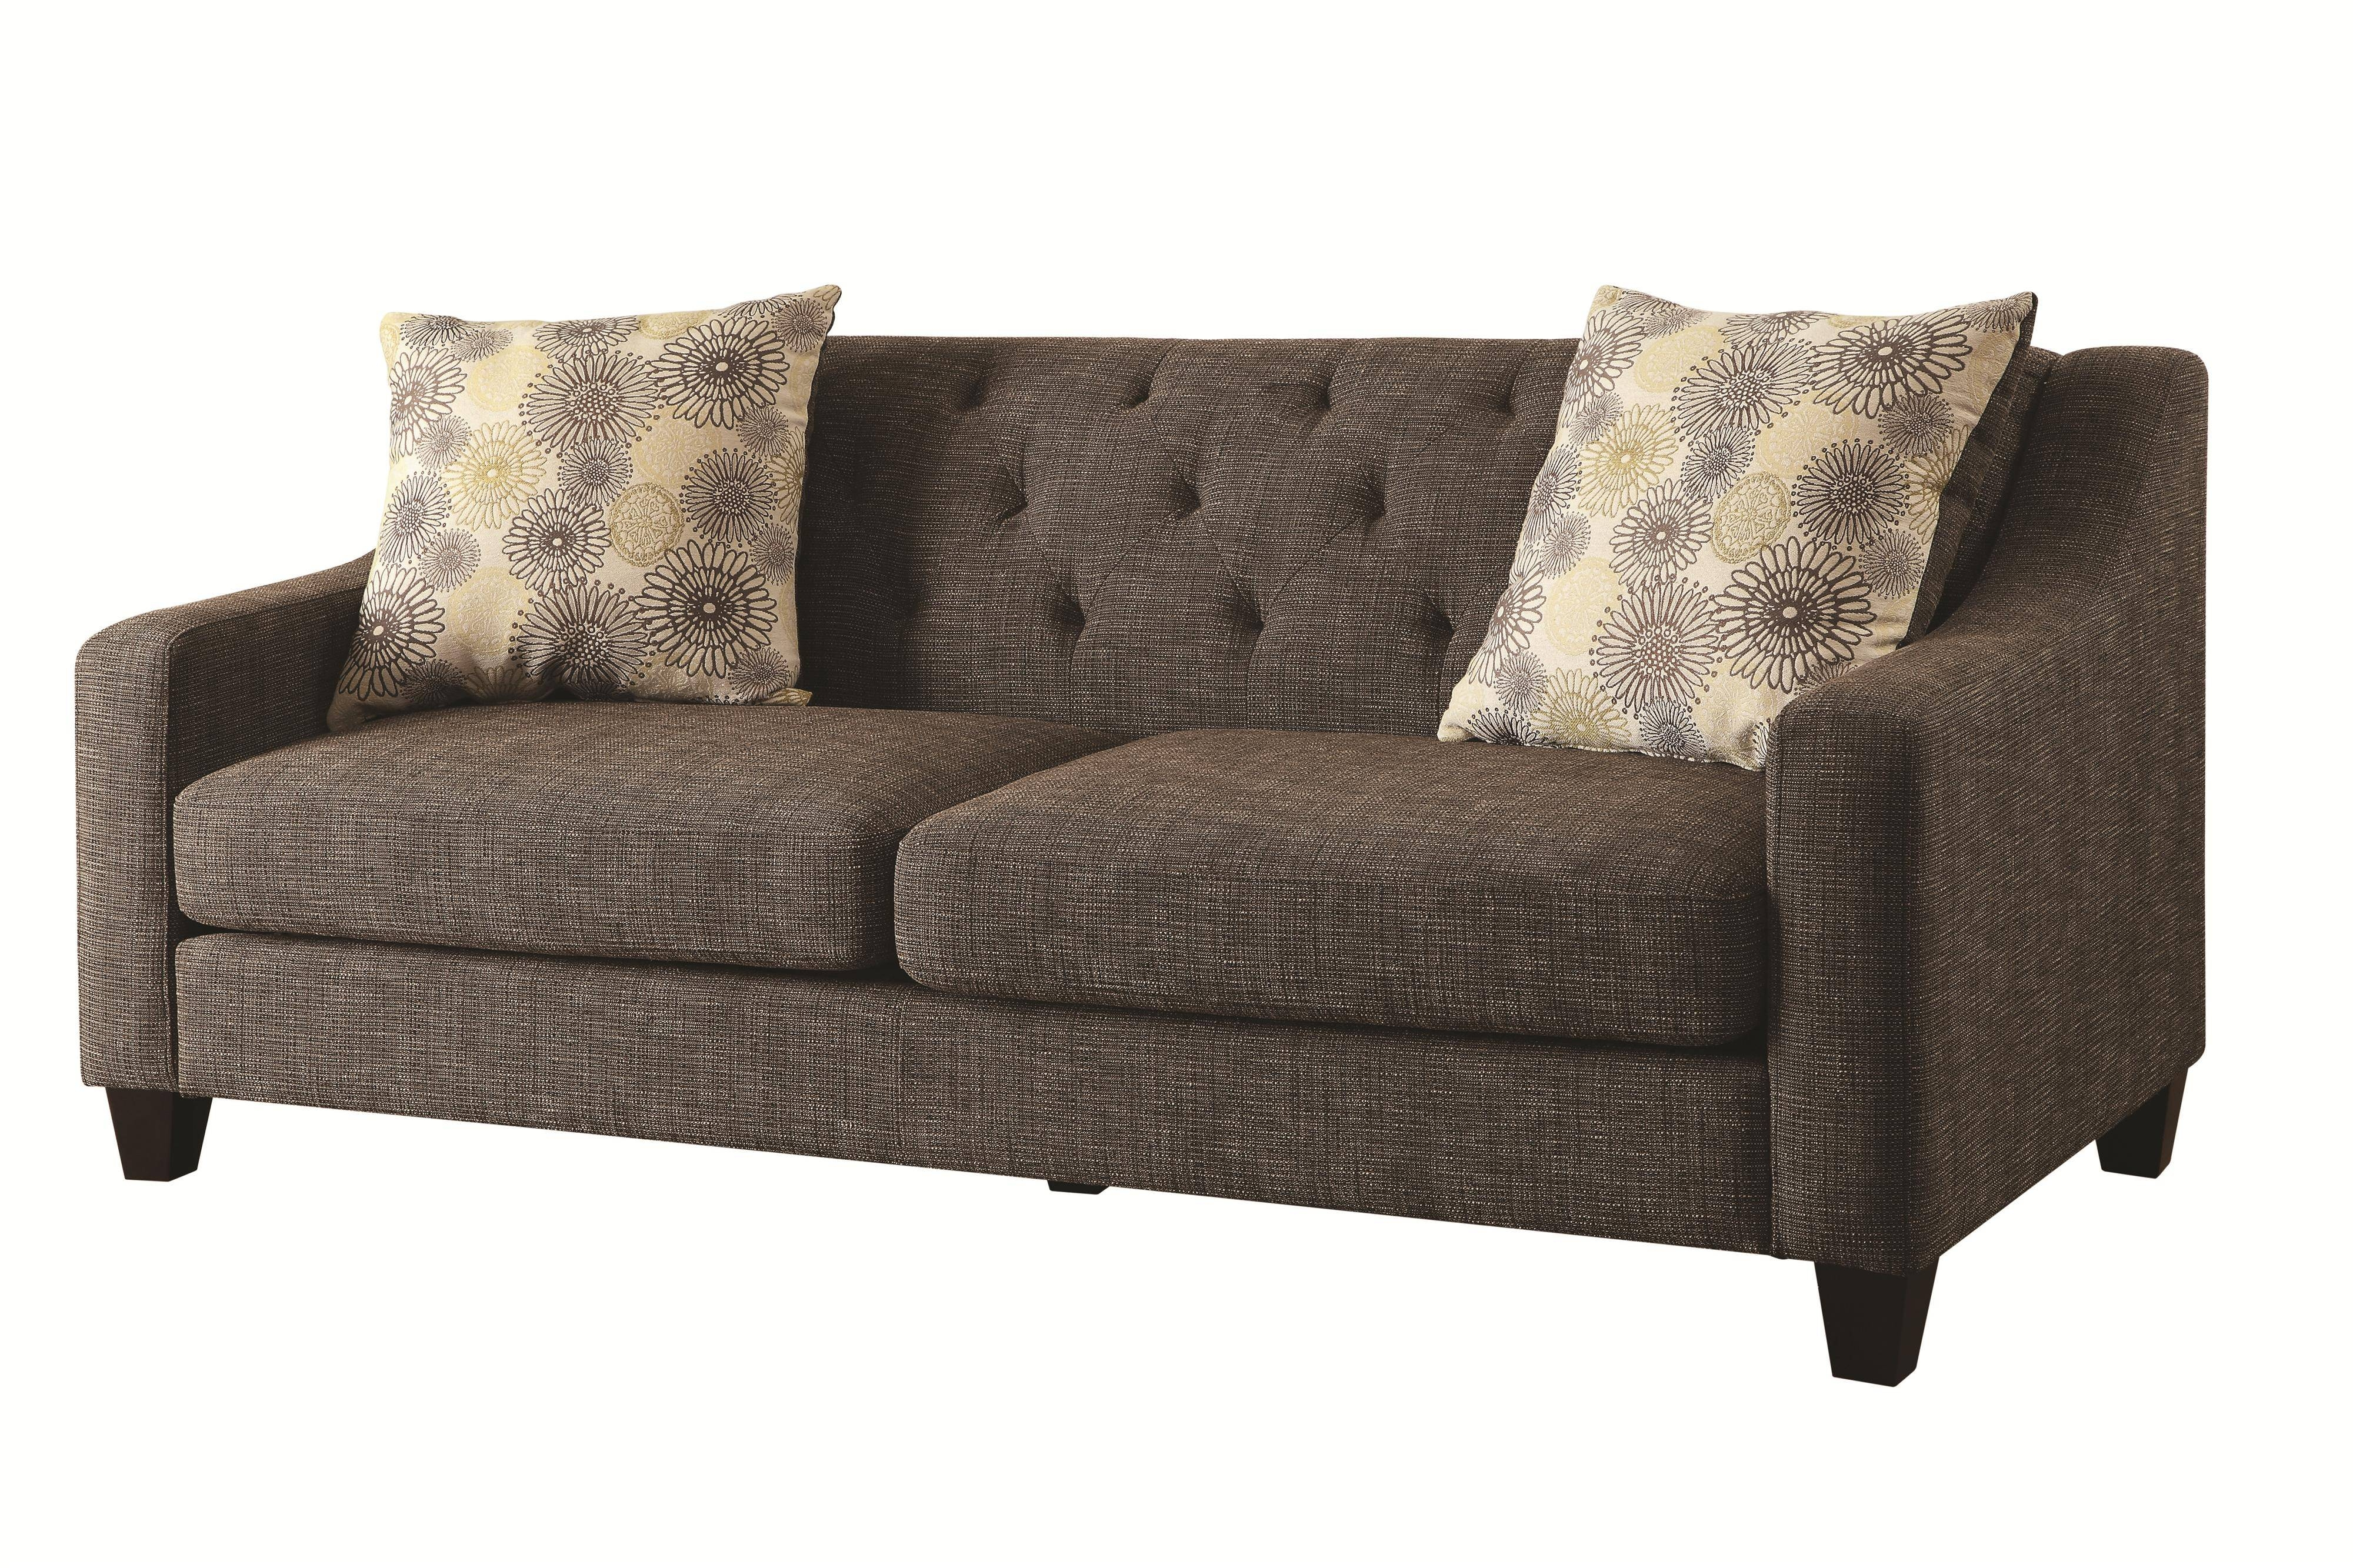 Trend Sofa Back Pillows 47 In Living Room Sofa Ideas With Sofa within Loose Pillow Back Sofas (Image 15 of 15)